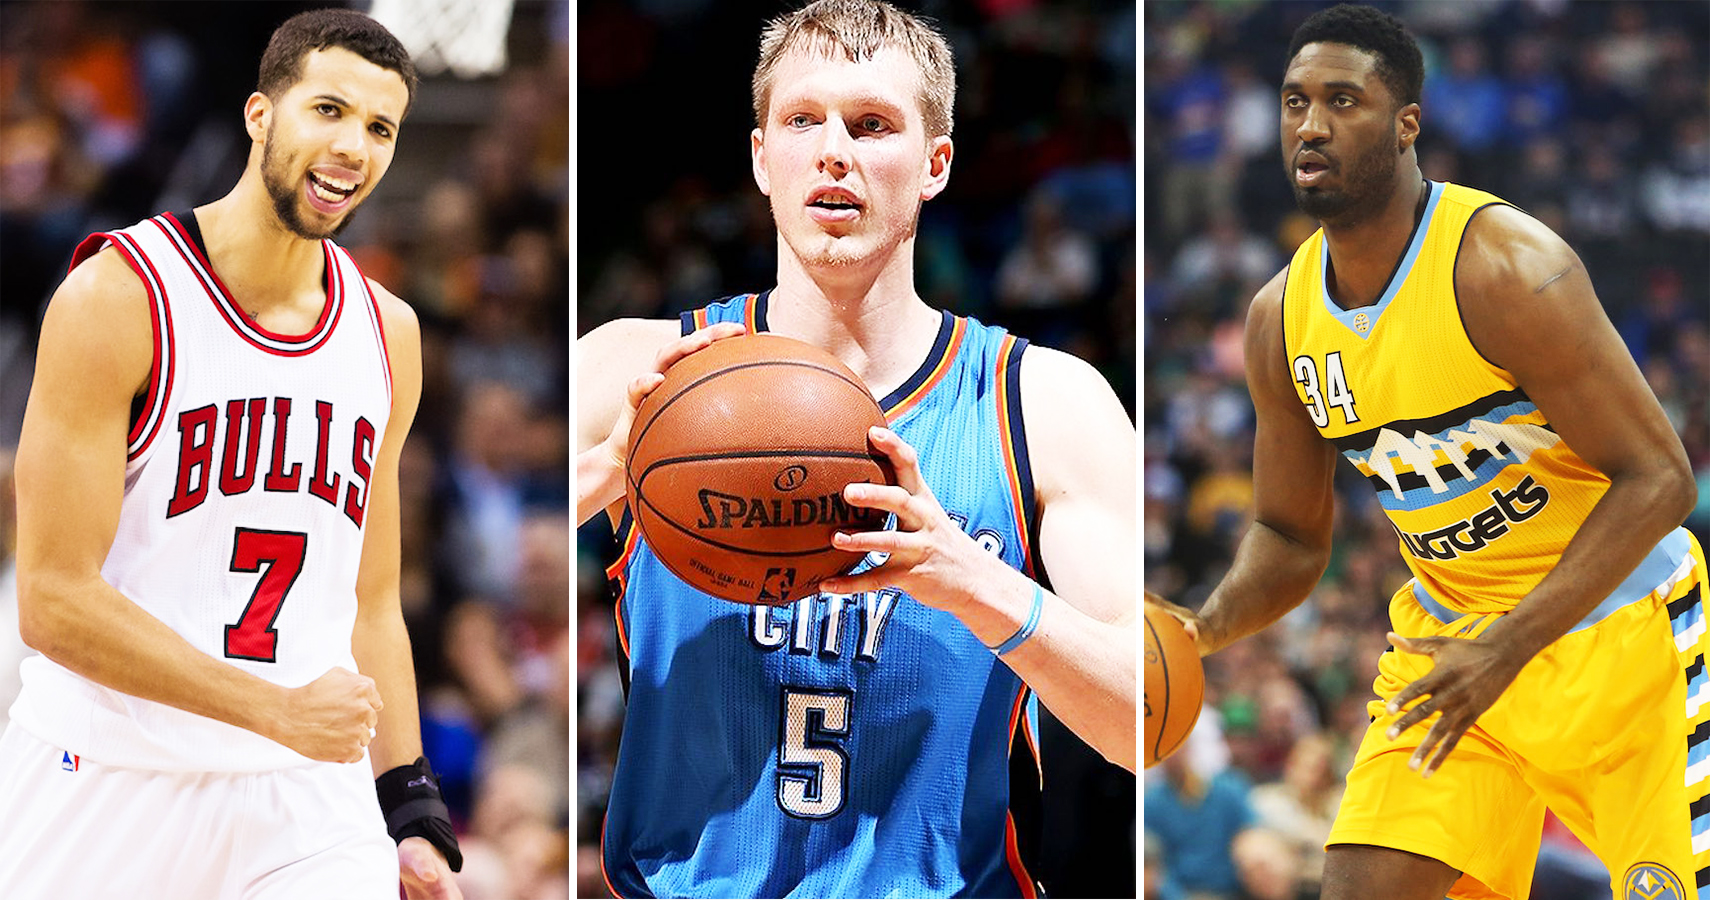 Basketball Players: Top 3 Worst Current NBA Players At Each Position